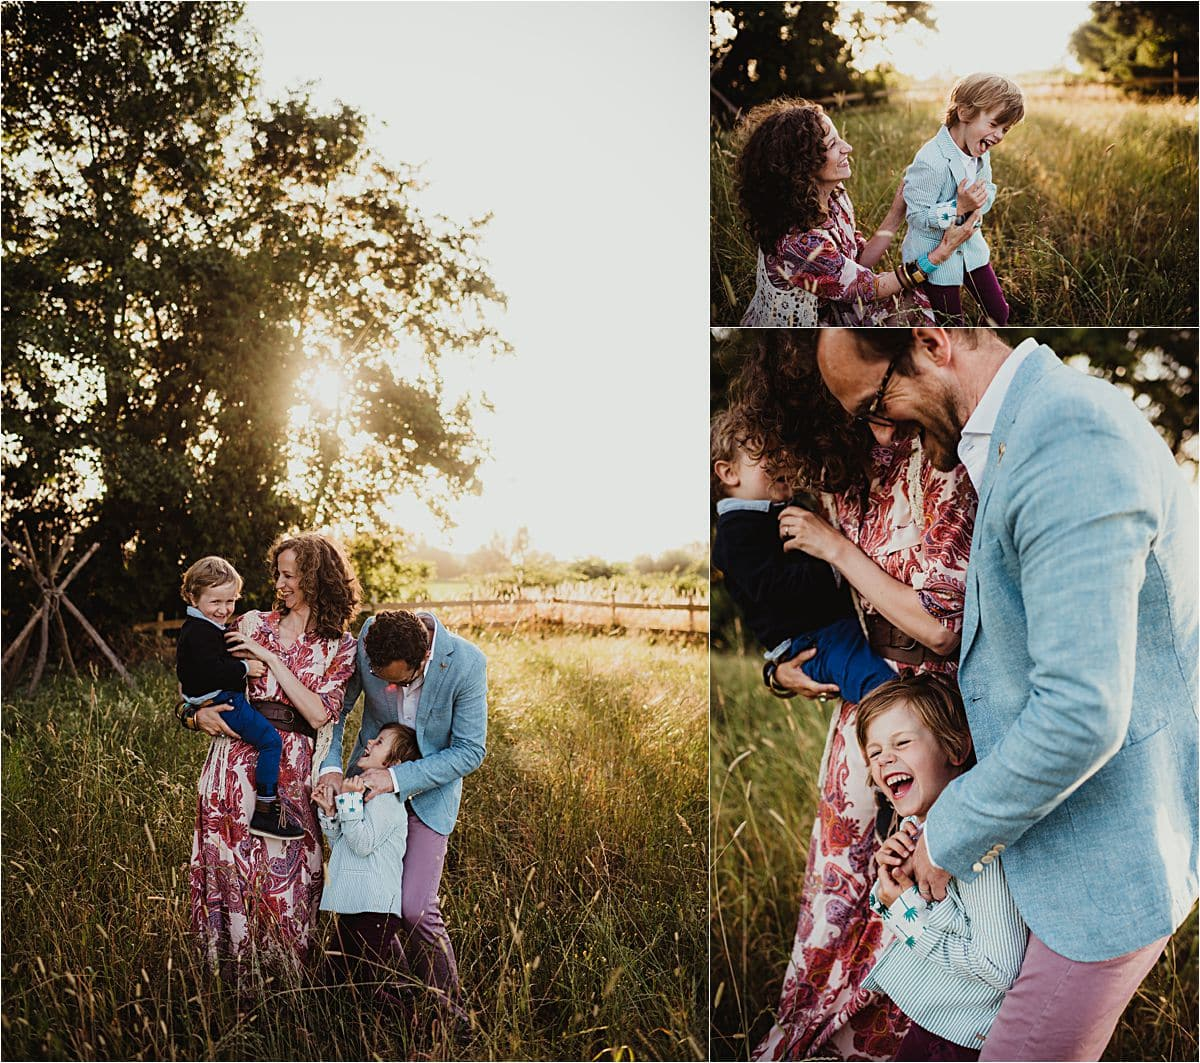 Collage Family in Field